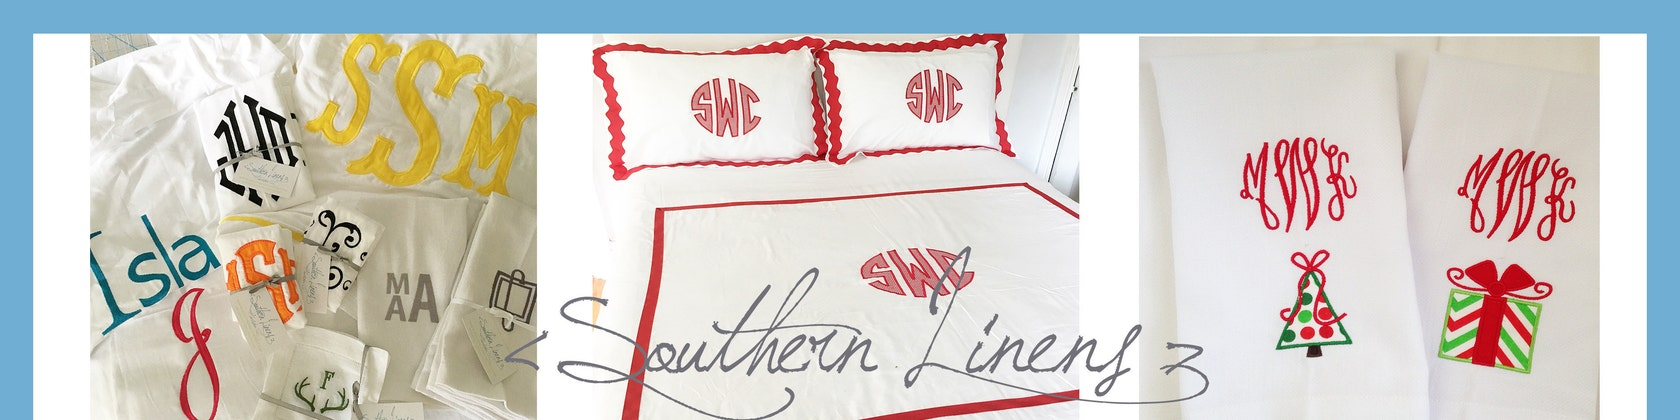 monogram linens by southernlinen on etsy